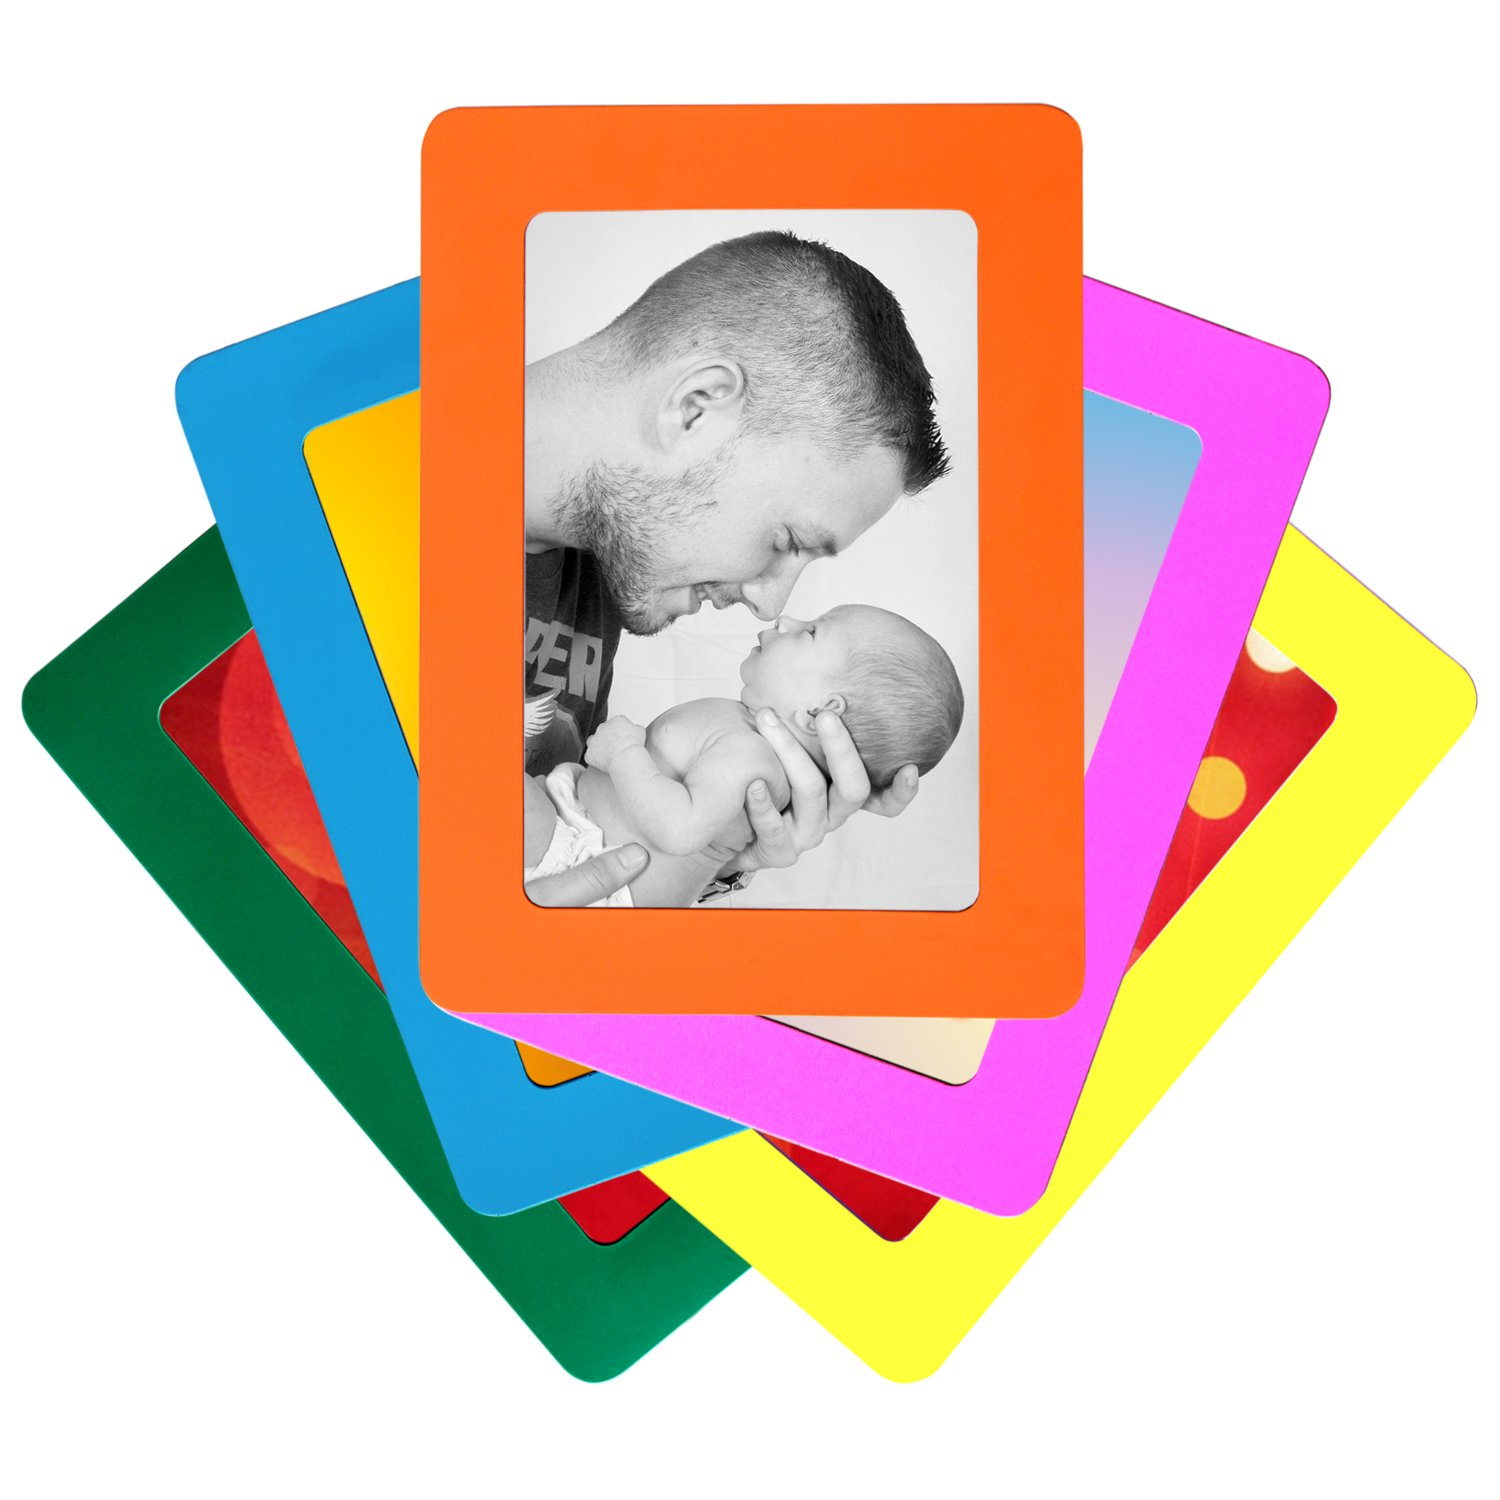 set of 5 colorful magnetic picture frames by de dazzle standard 4x6 inch postcard size magnetic photo frames for refrigerator cherish